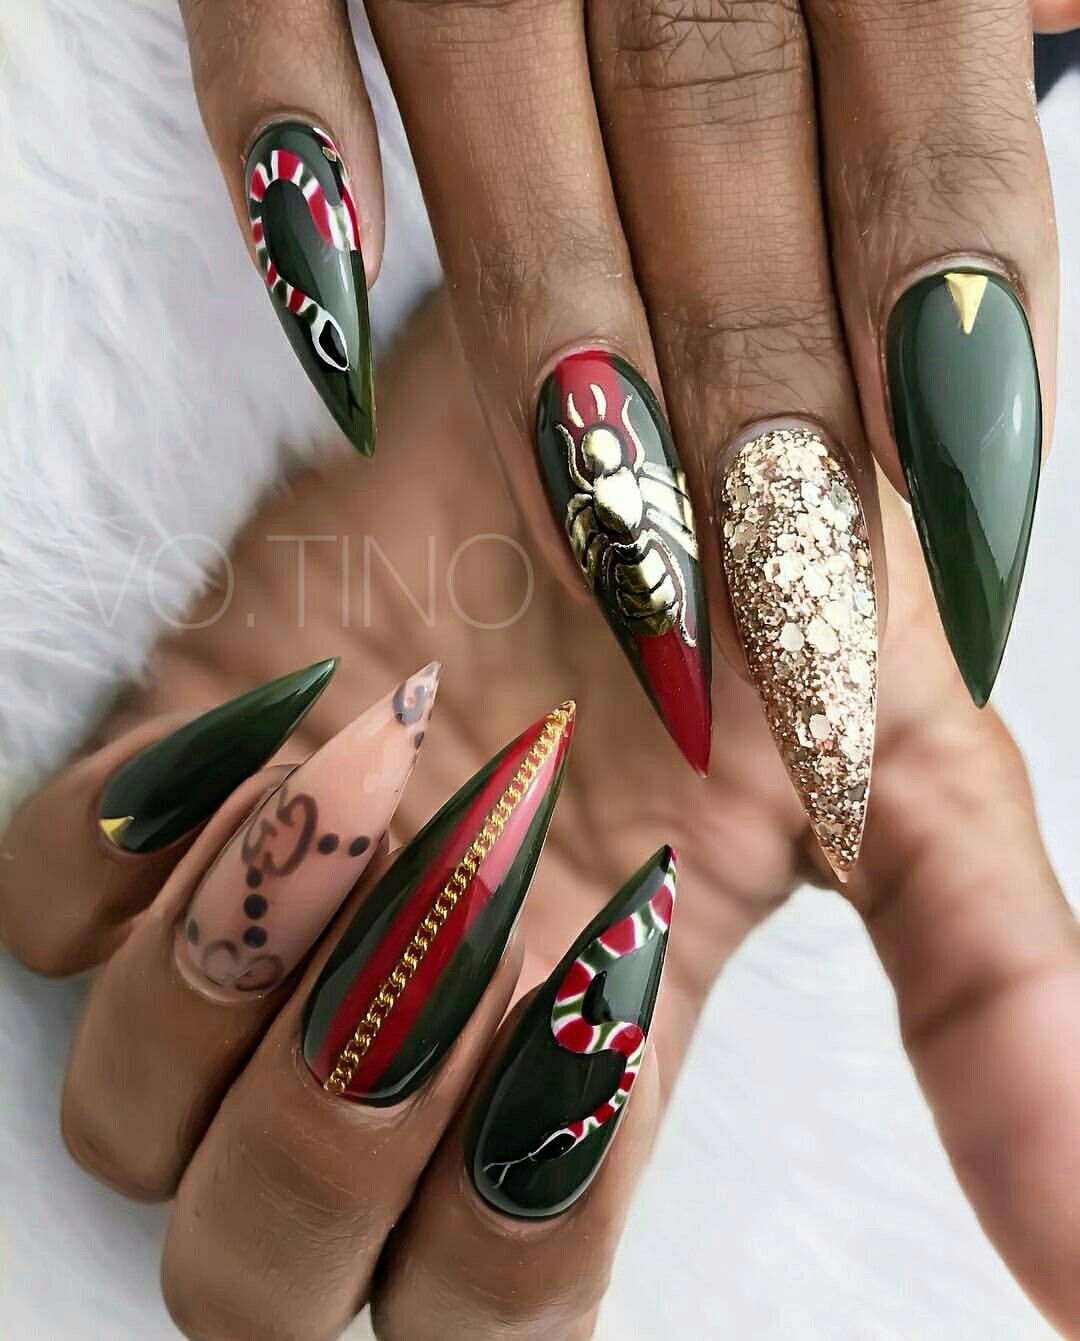 Pin by fatima on nails in pinterest nails nail designs and